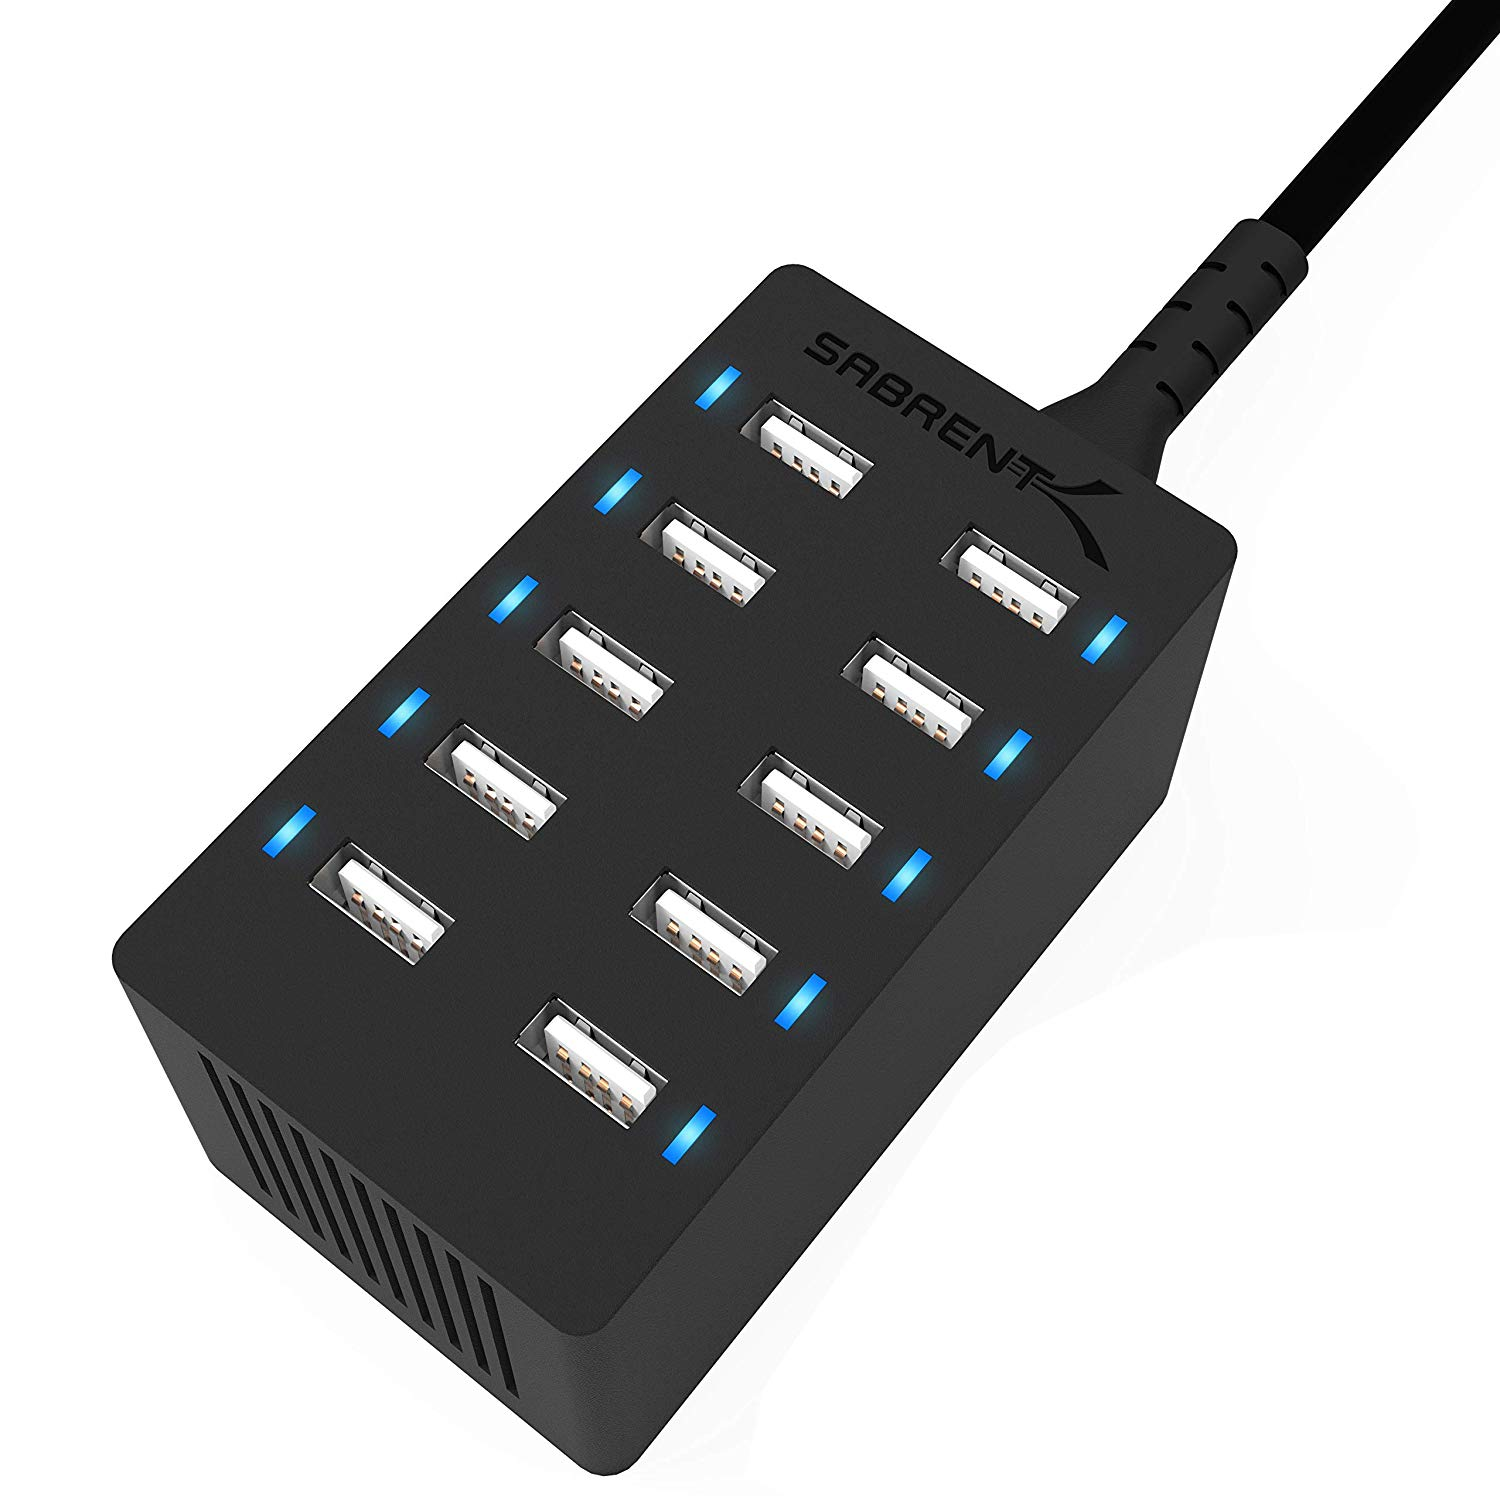 60 Watt (12 Amp) 10-Port Family-Sized Desktop USB Rapid Charger